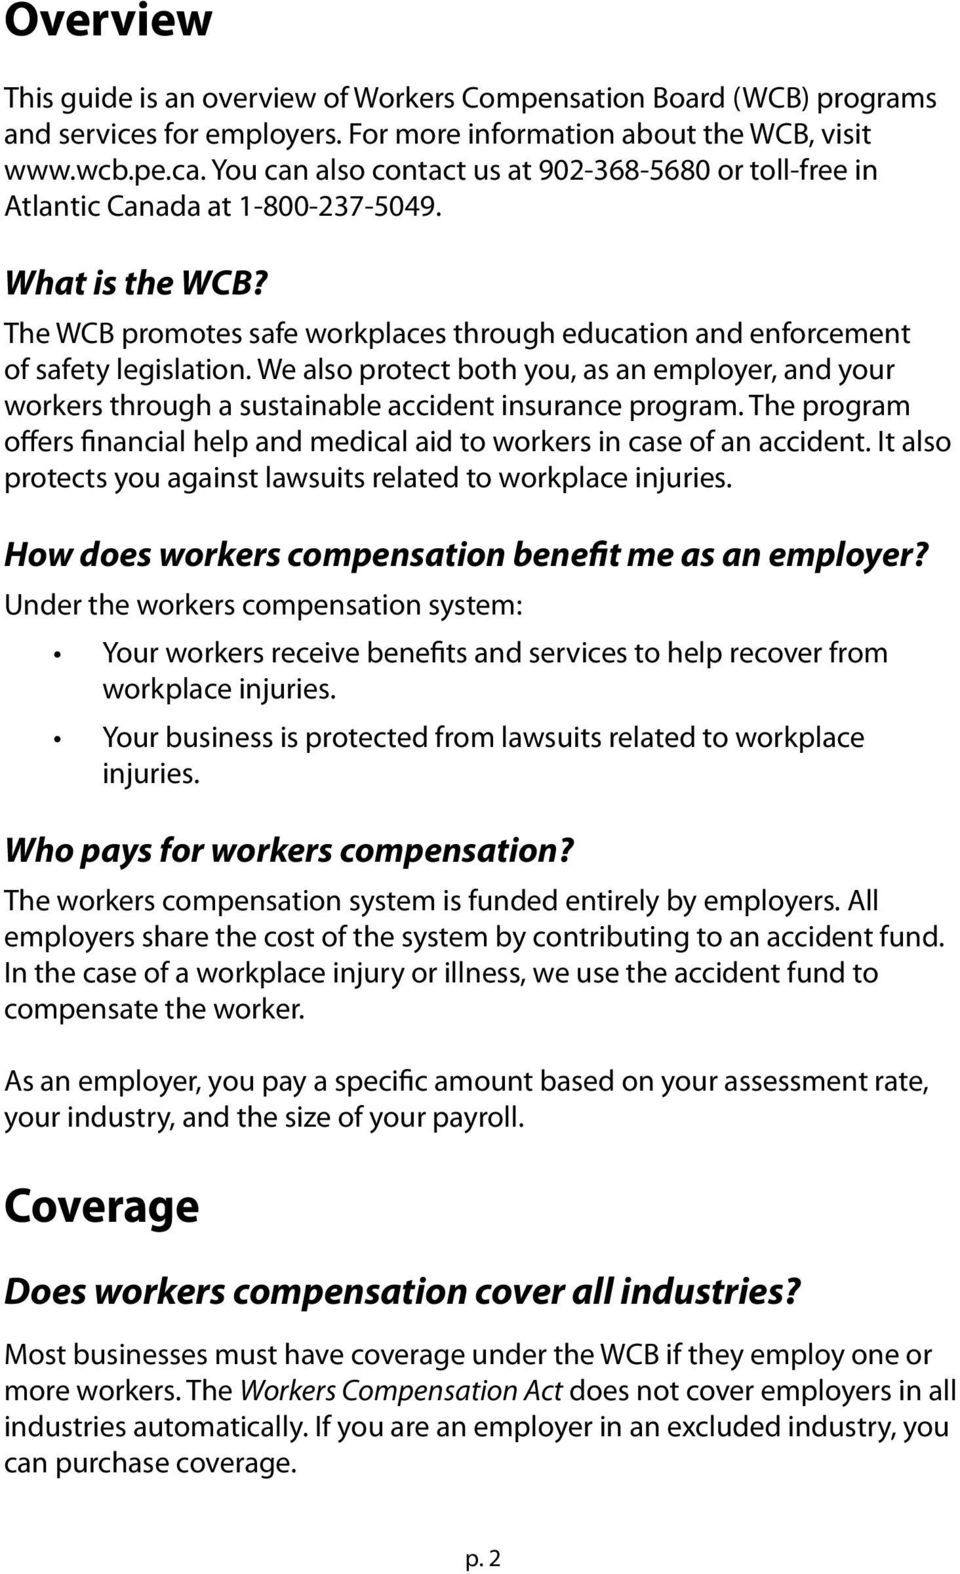 We also protect both you, as an employer, and your workers through a sustainable accident insurance program. The program offers financial help and medical aid to workers in case of an accident.